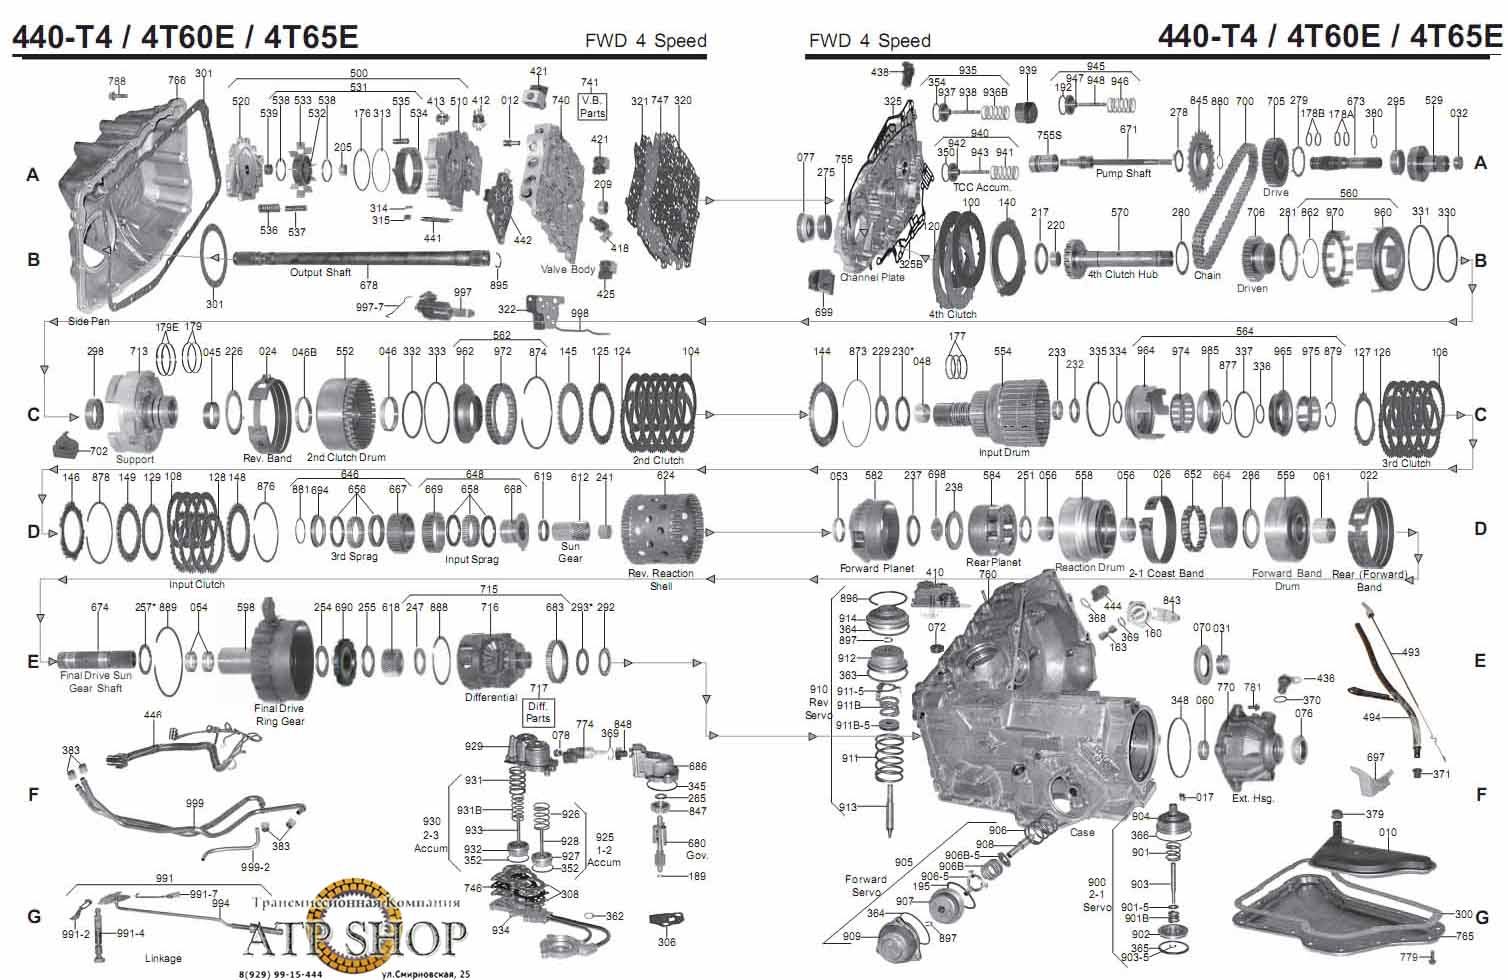 hight resolution of why transmission repairs for a gm 4t60e are a major headache 4t60e transmission parts diagram 4t60e transmission diagram